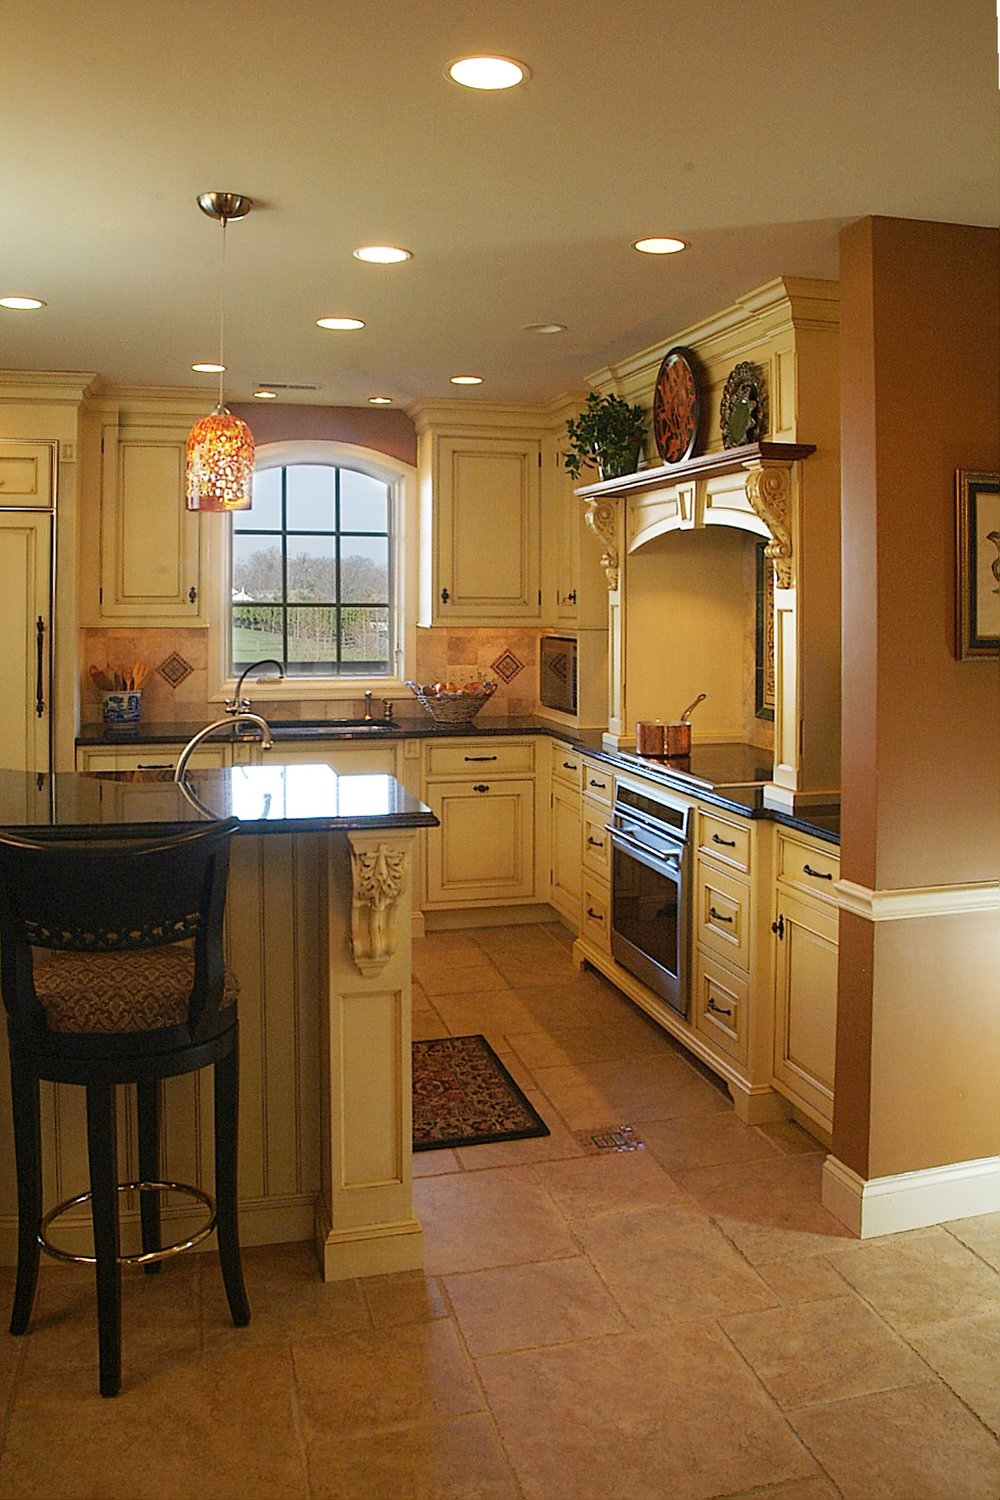 Kitchen-Side view.jpg